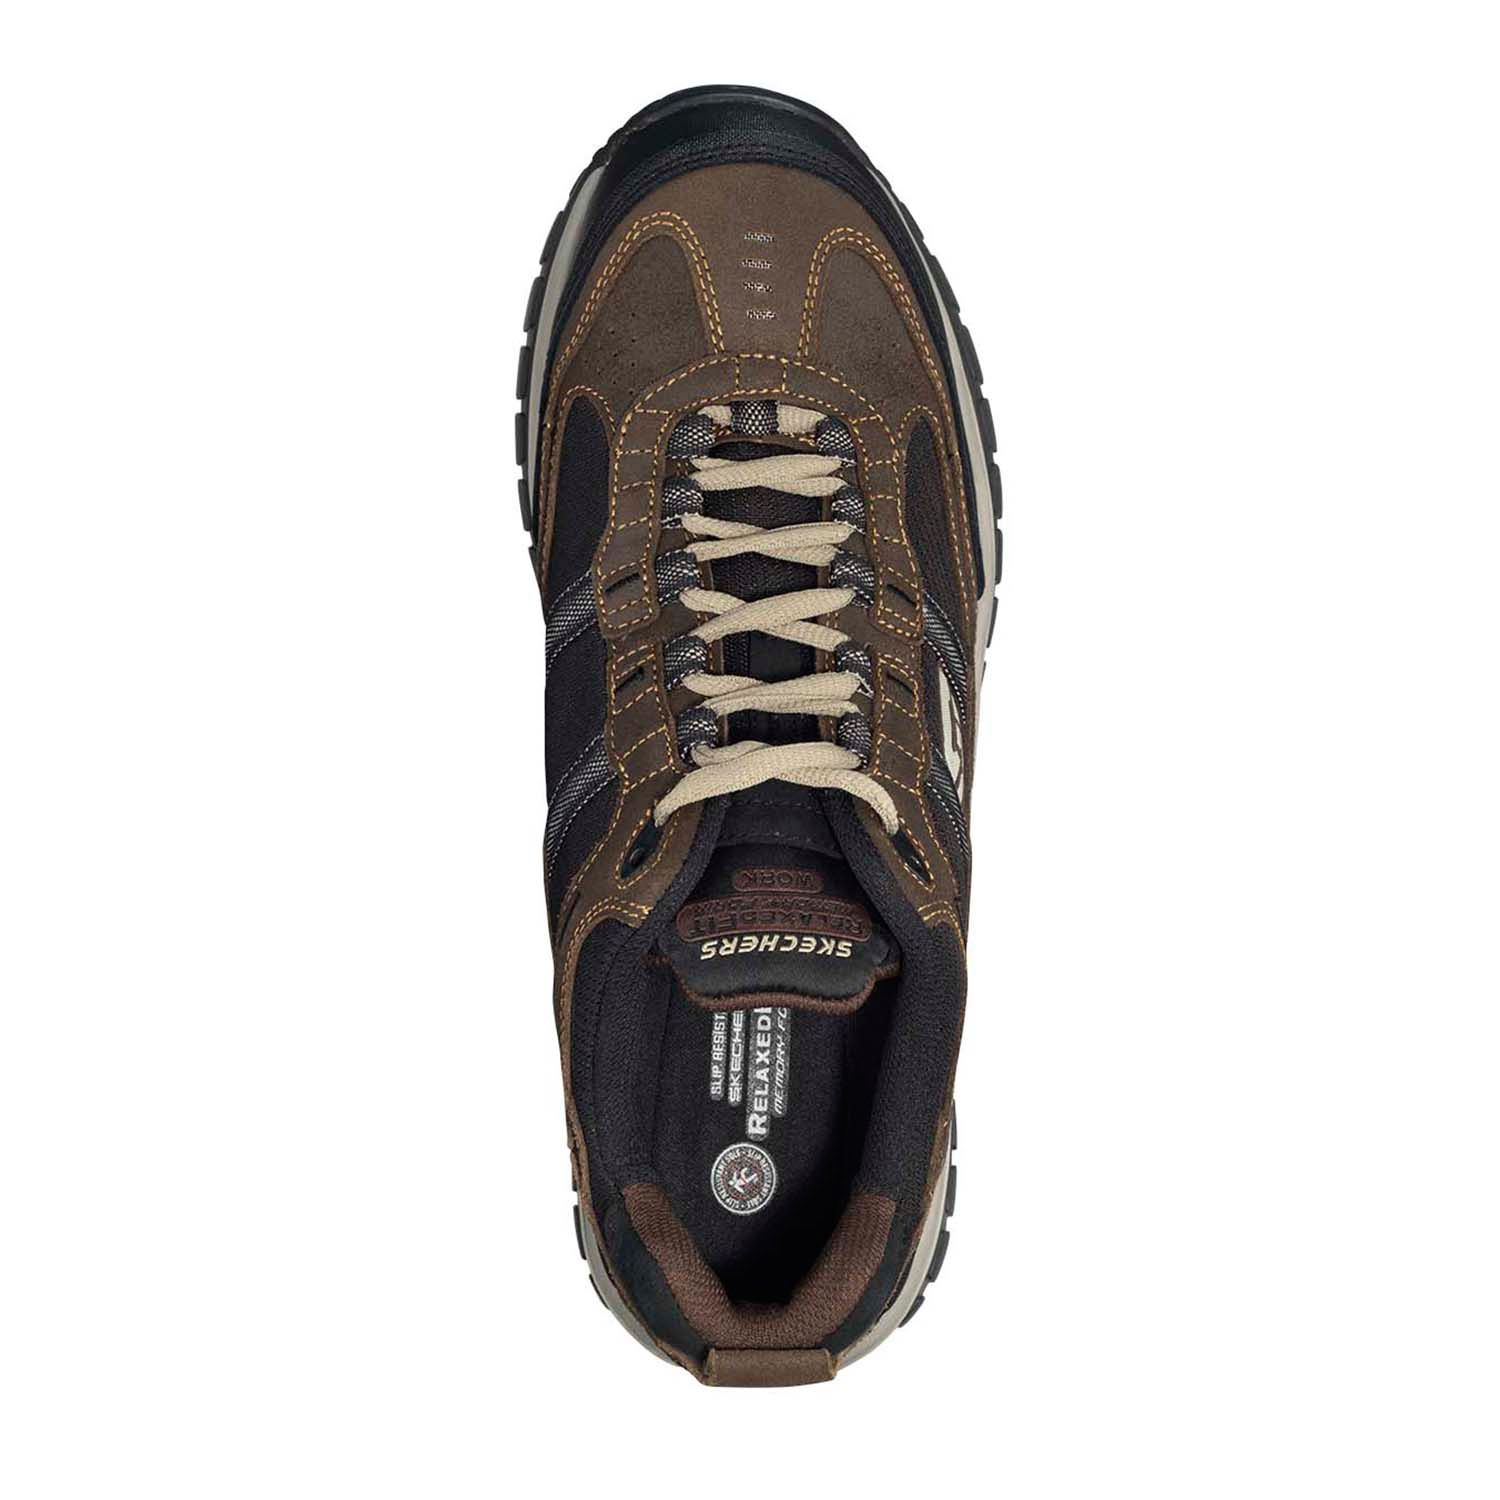 1a2acf5624da2 Mens Skechers Athletic Shoes & Sneakers - Shoes | Kohl's